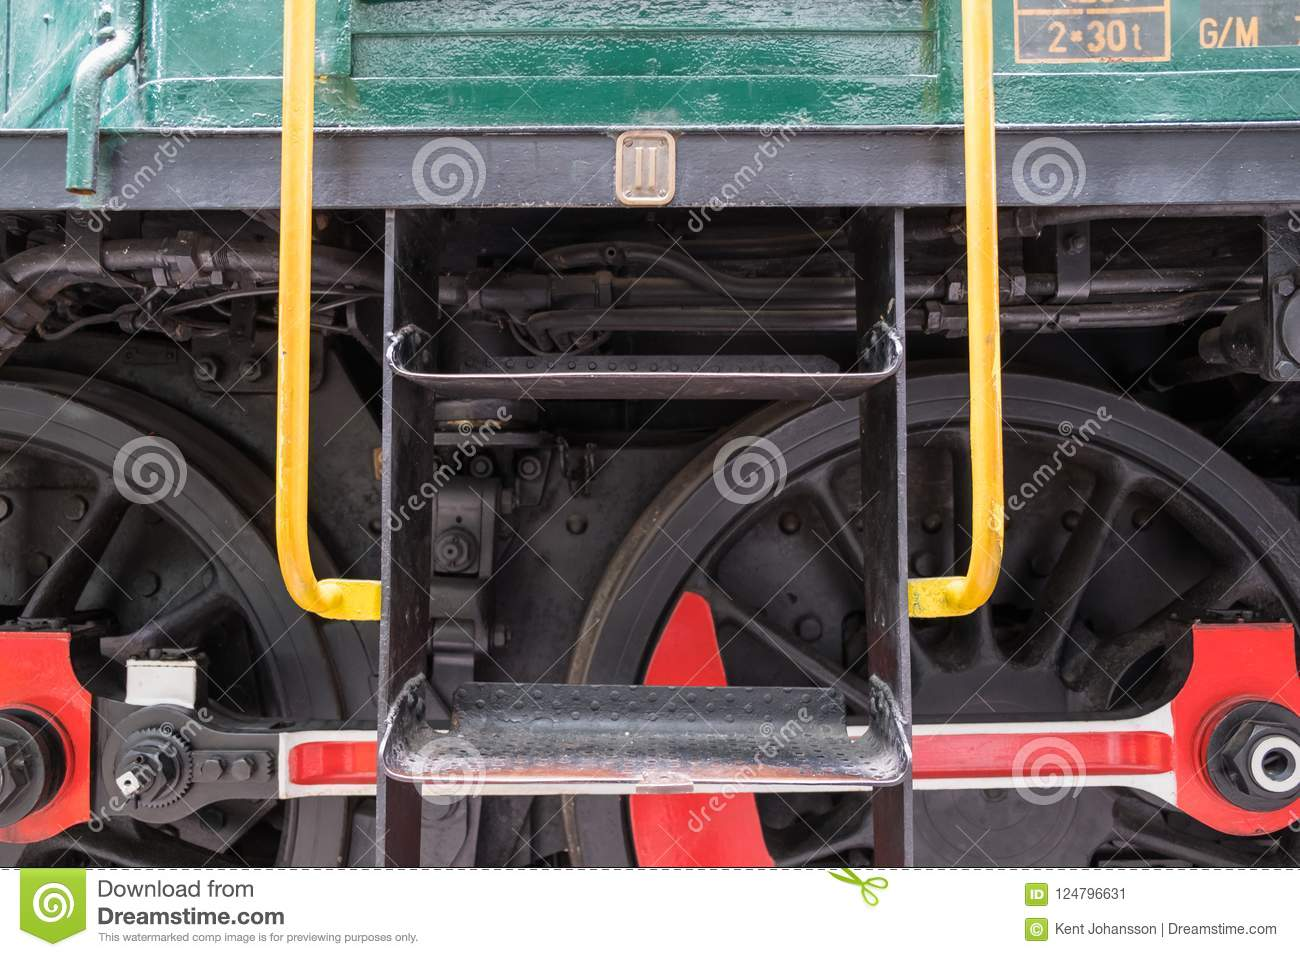 Detail of Wheels on Train Engine